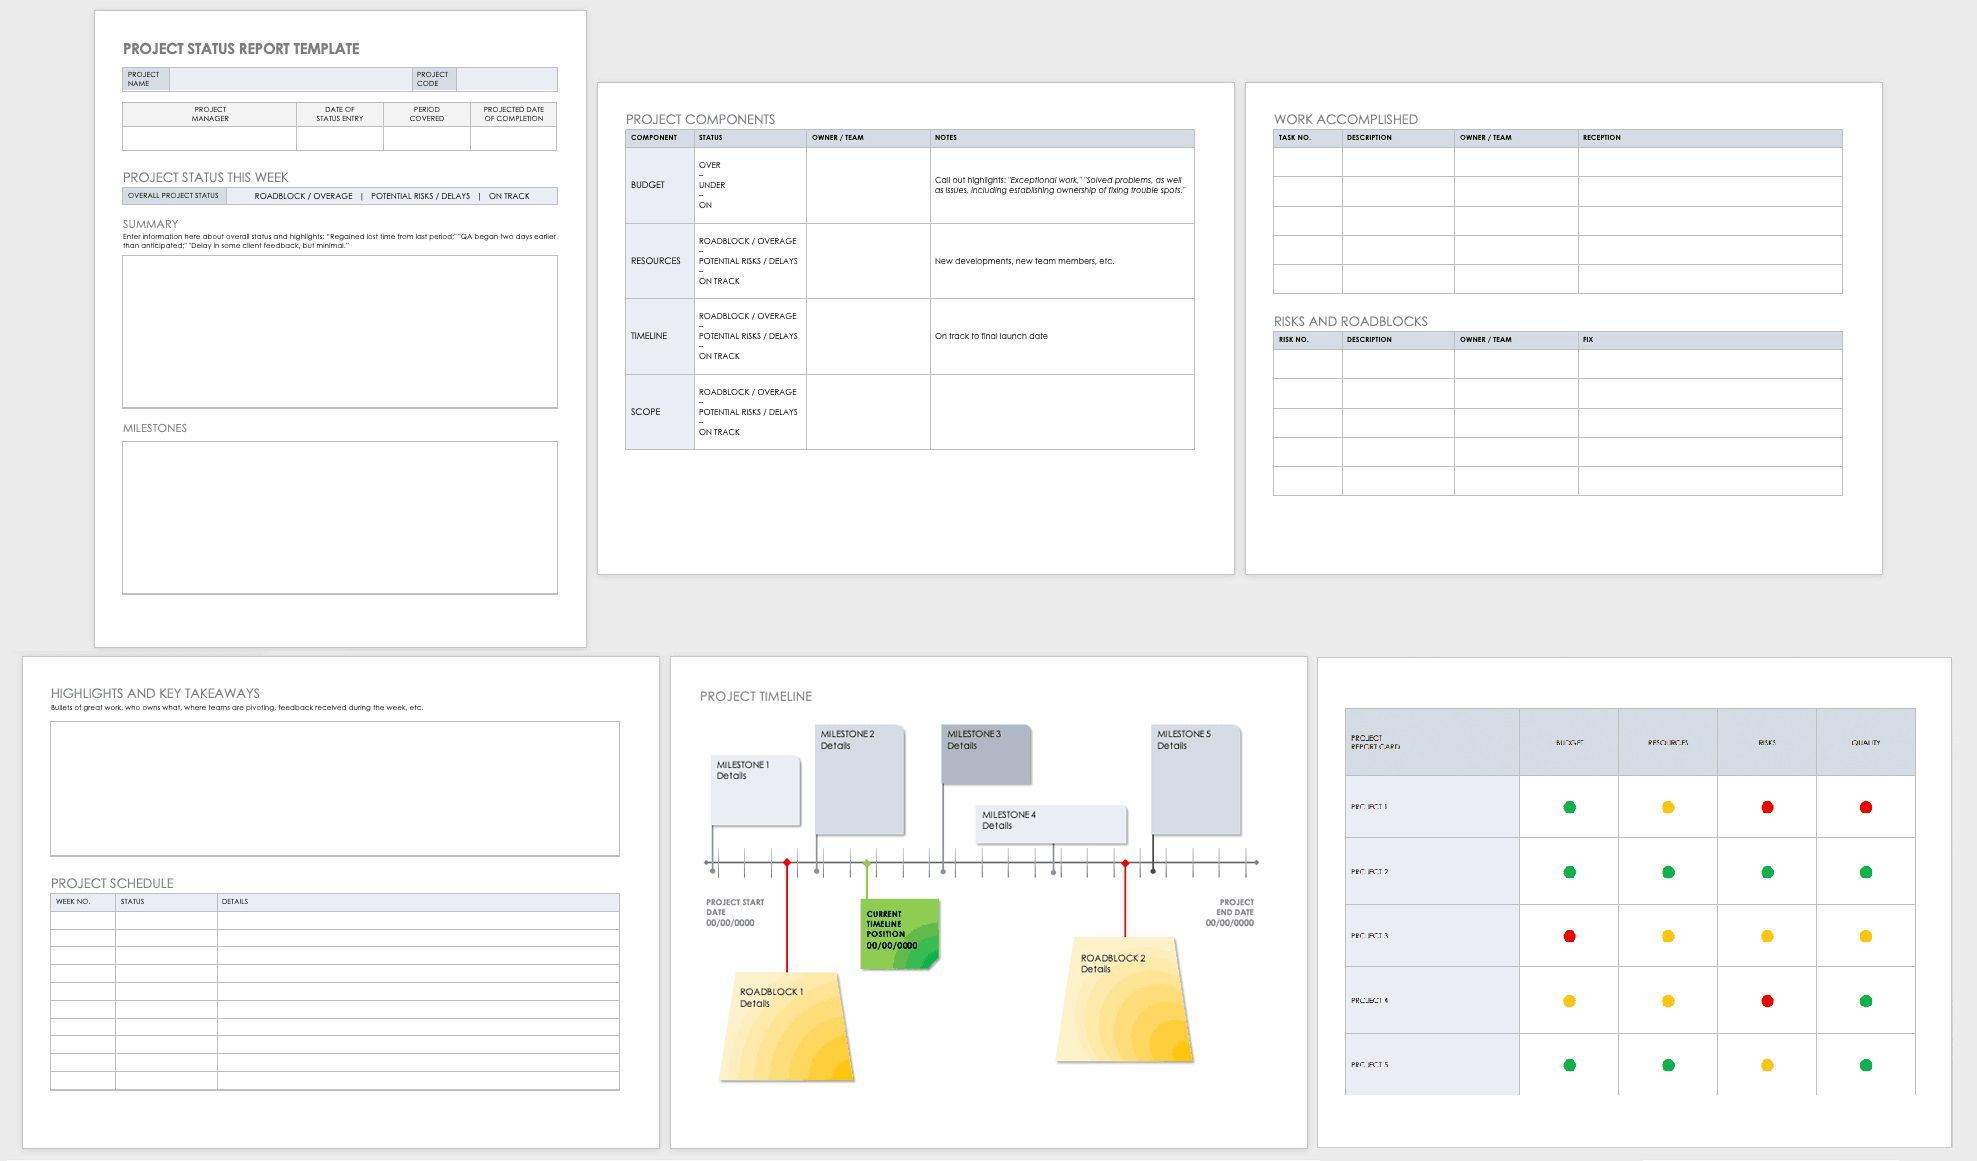 006 Marvelou Construction Project Management Template High Def  Templates Free Form Download ContractFull